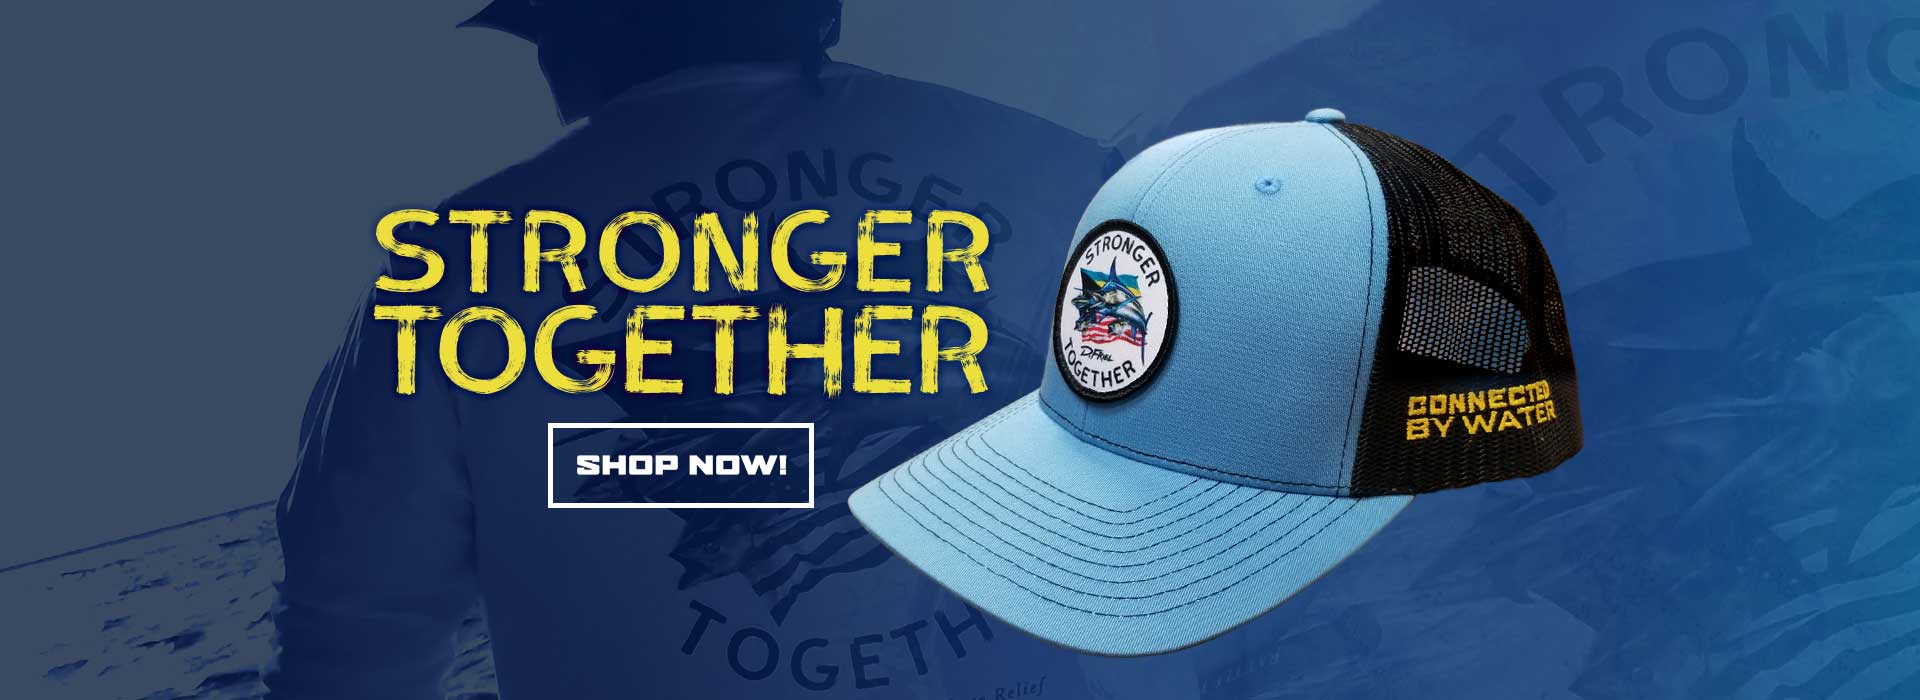 StrongerTogether-Connected-by-water